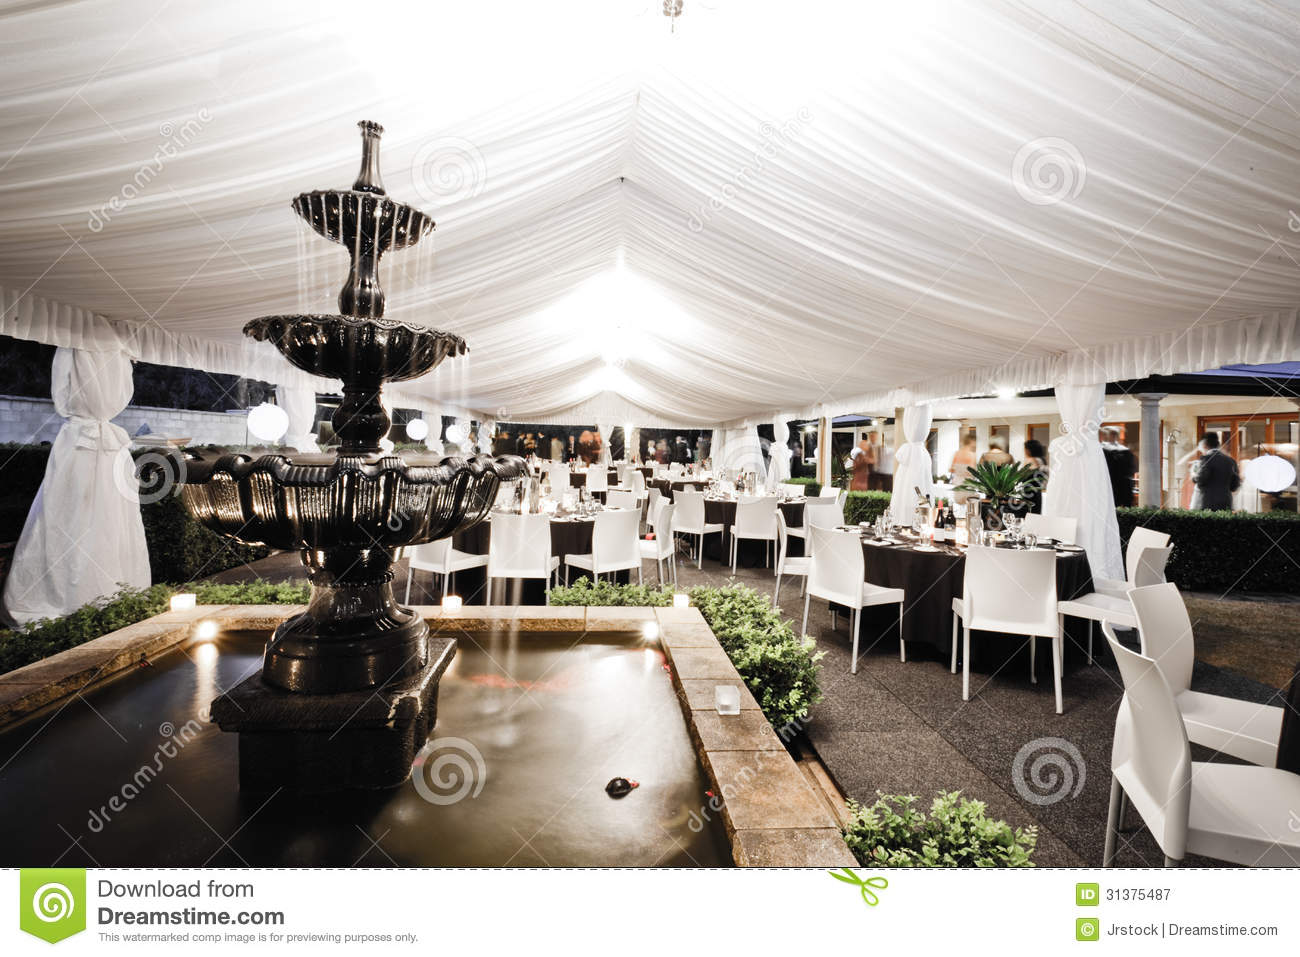 Wedding Interior Decoration Images Of Wedding Venue Interior With Fountain Royalty Free Stock